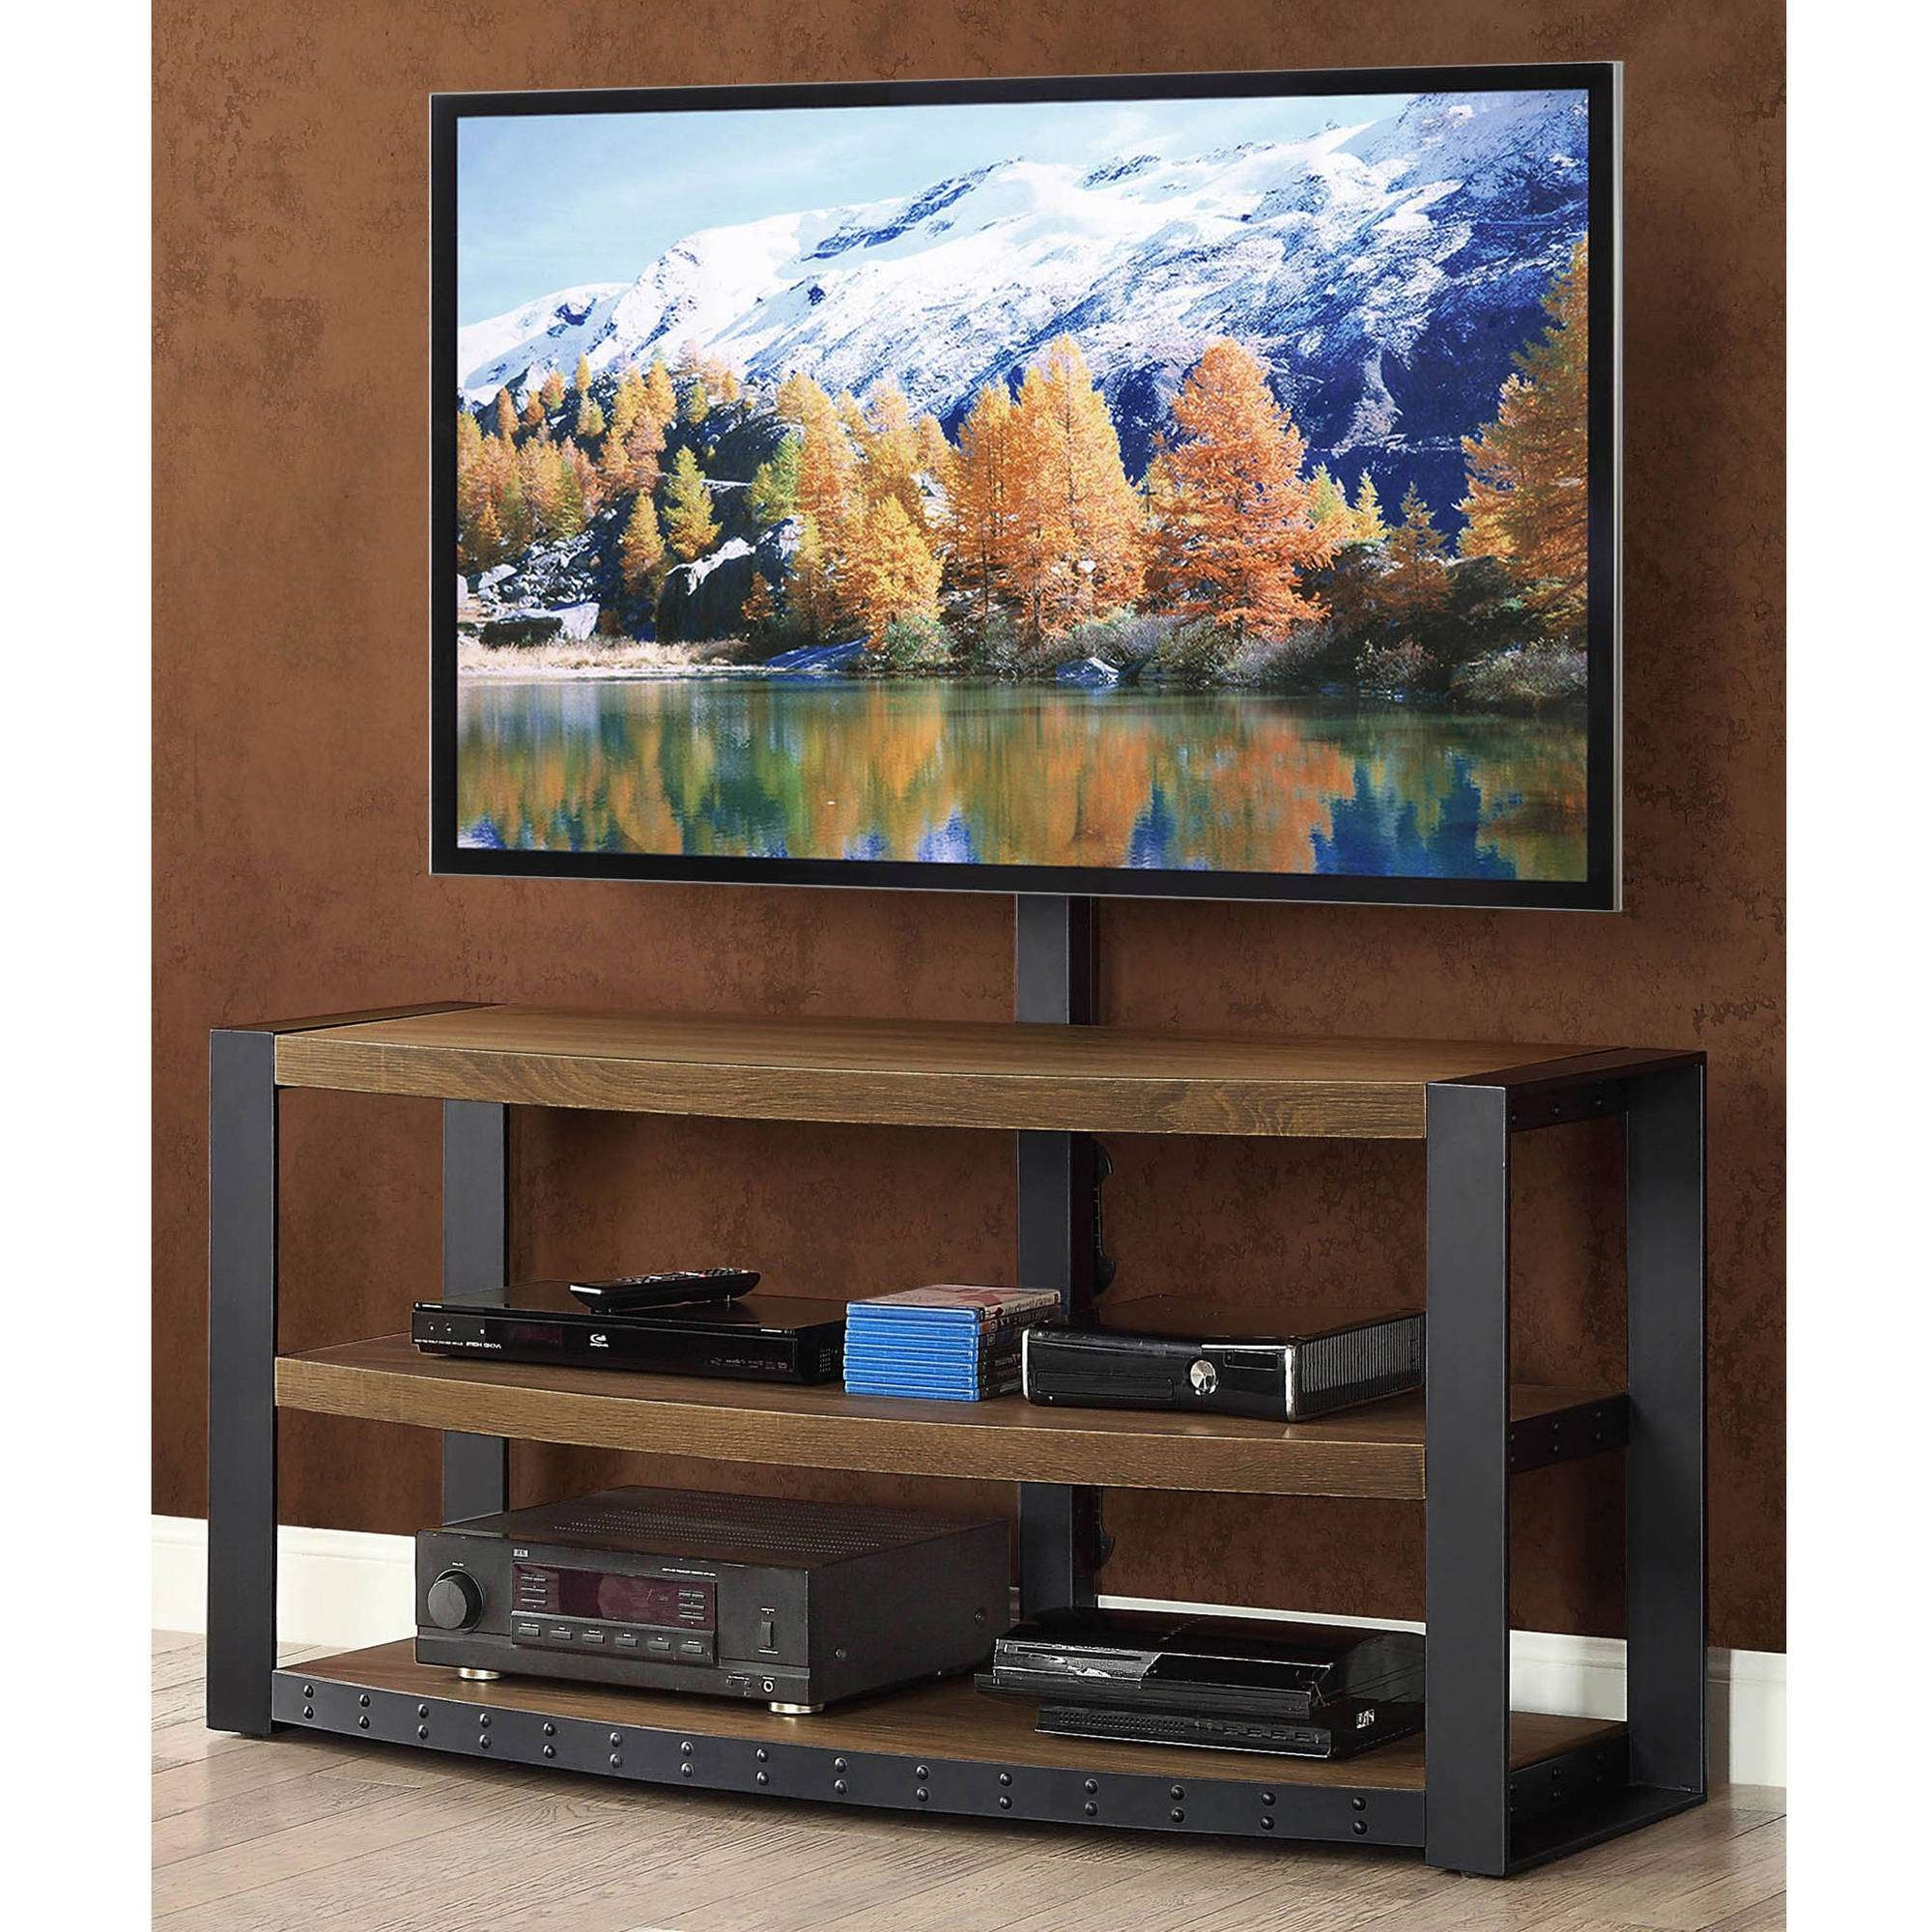 "Whalen Santa Fe 3 In 1 Tv Stand For Tvs Up To 65"", Warm Ash Finish Within Wood Tv Stands With Swivel Mount (View 12 of 15)"